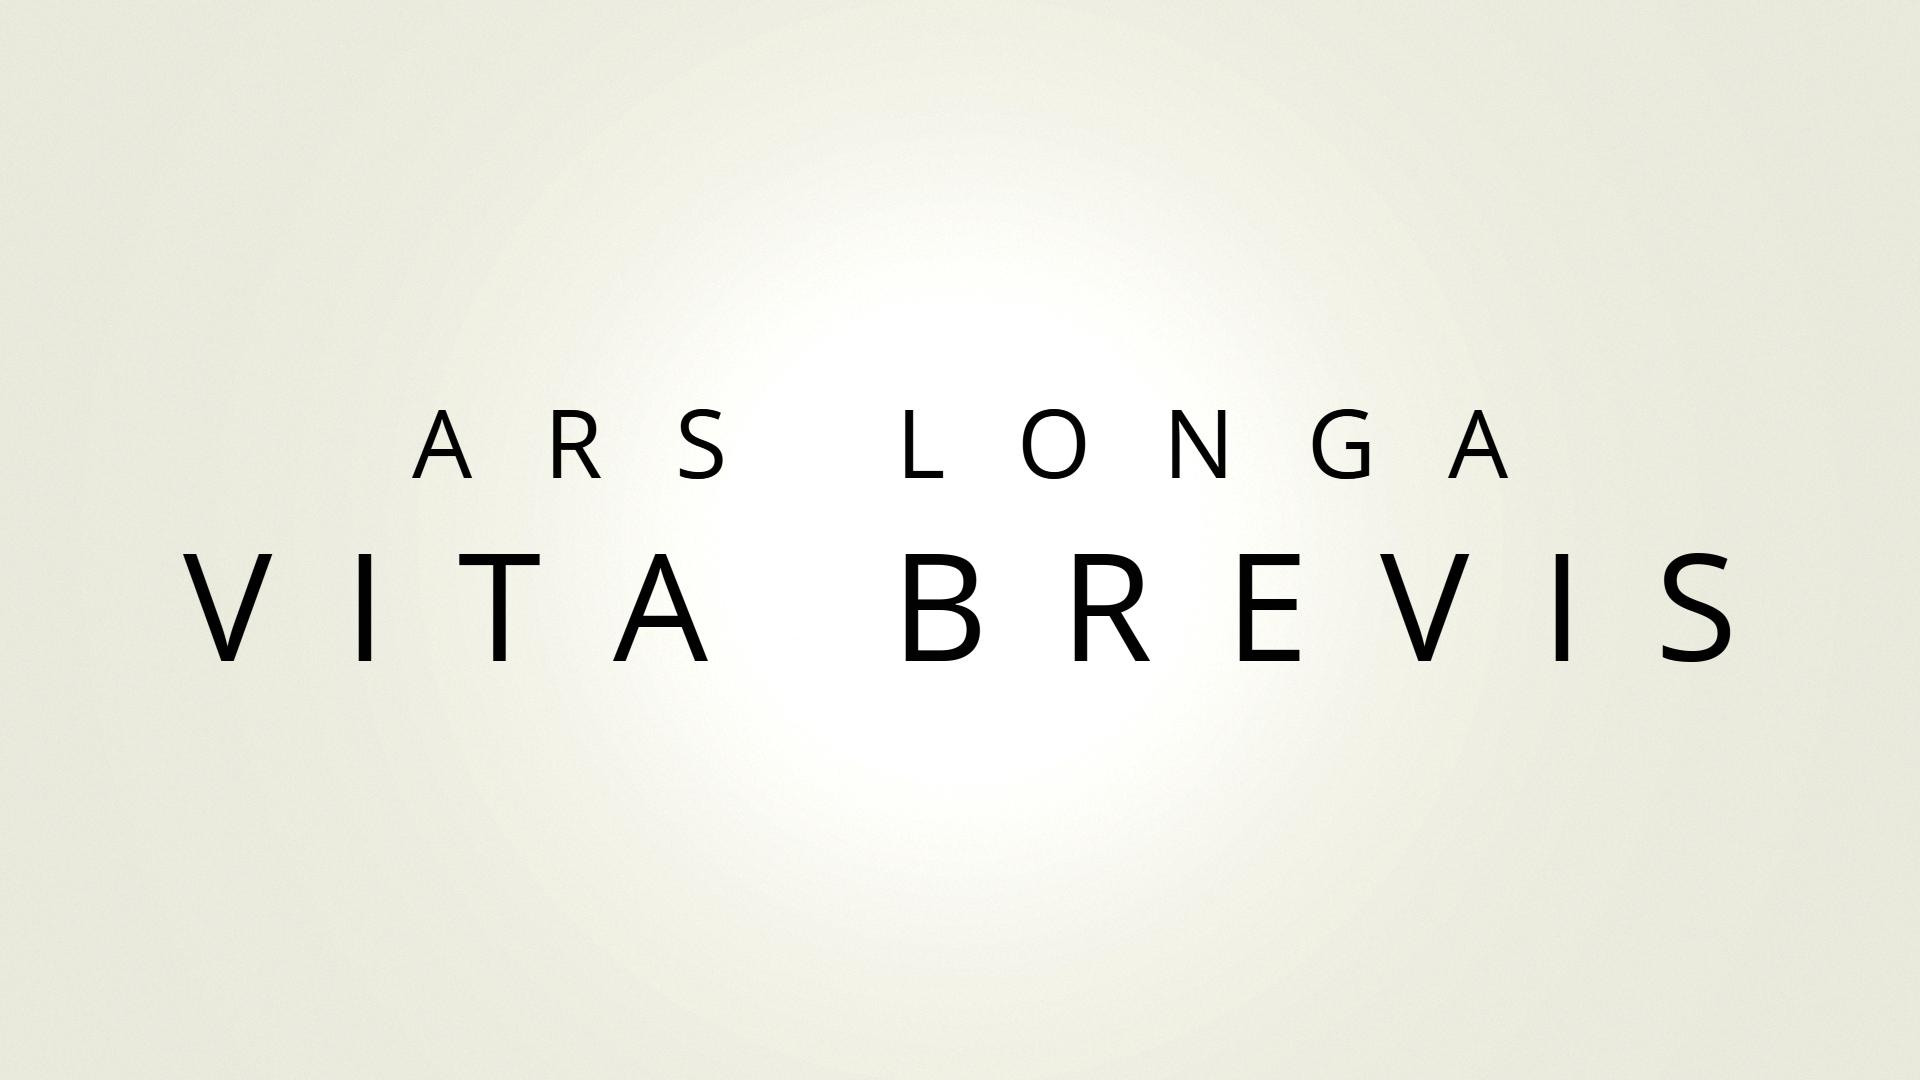 I-cant-think-a-way-a-quote-can-be-more-clean-and-minimal-than-this-Ars-Longa-Vita-Brevis-1920-x-wallpaper-wp3407147